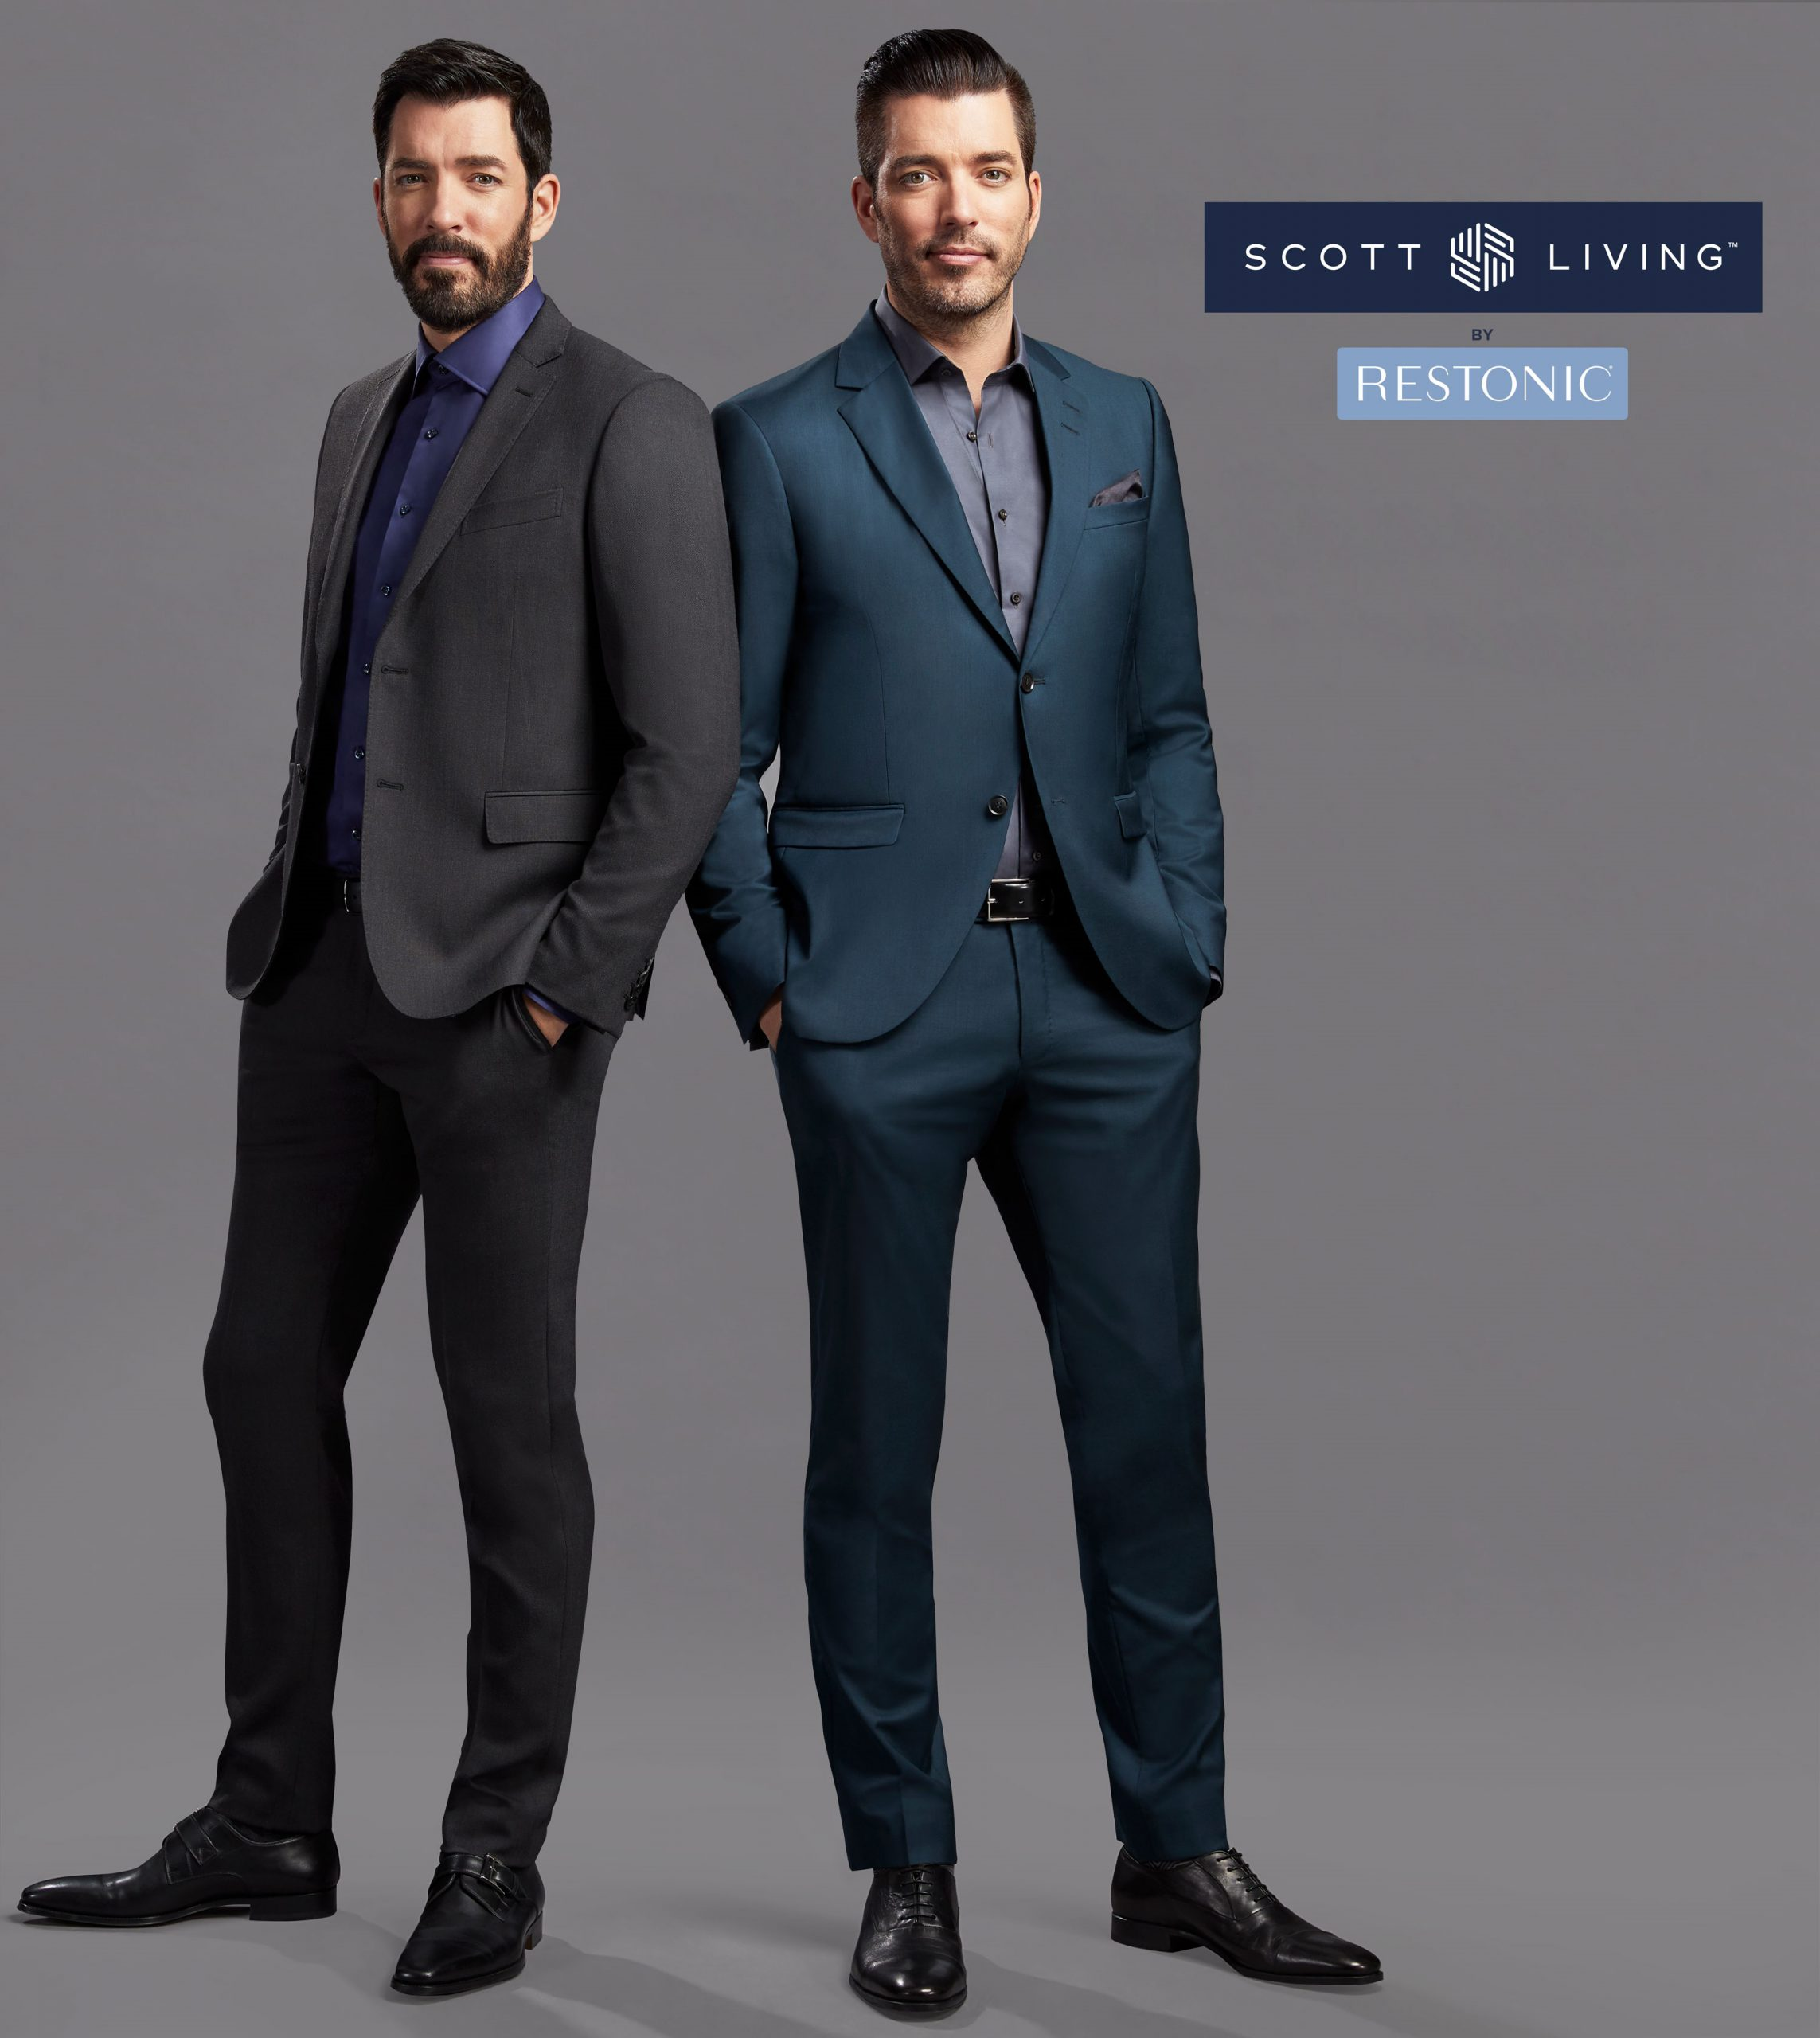 How do you build a better bedroom? Drew & Jonathan Scott, hosts of HGTV's Property Brothers offer design advice for your sleep space.